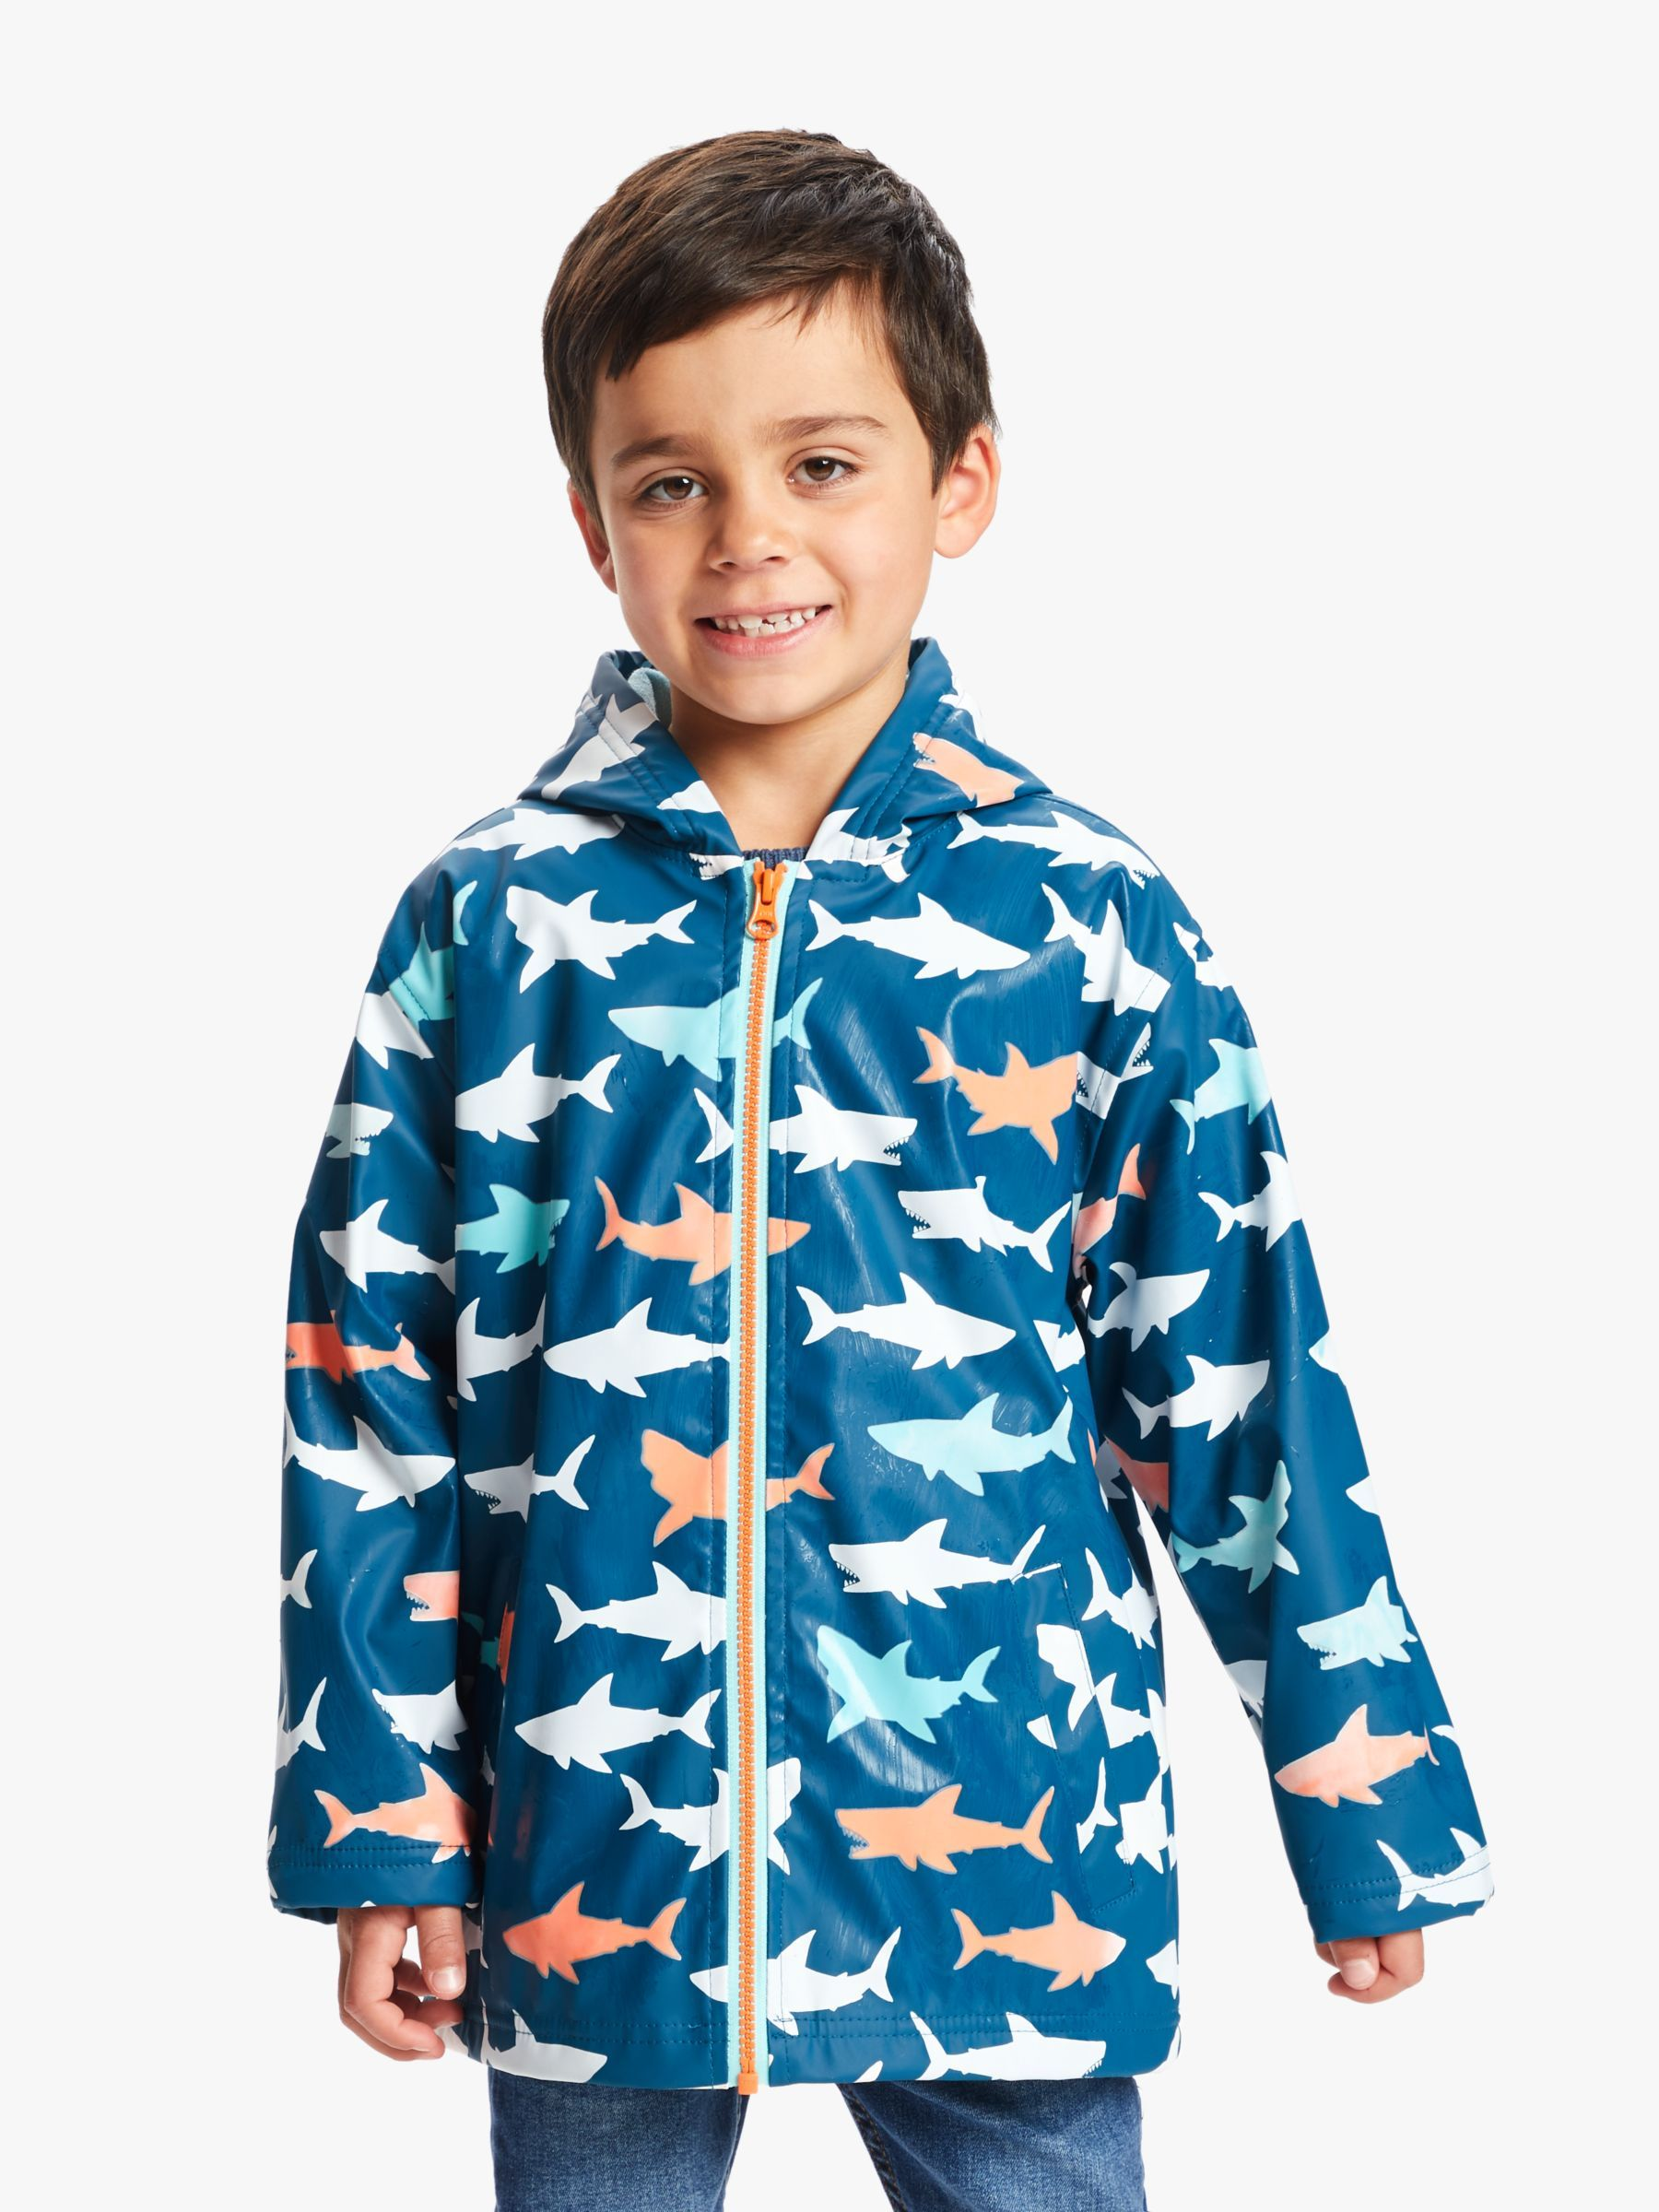 Hatley Boys Splash Pant Fleece Jacket